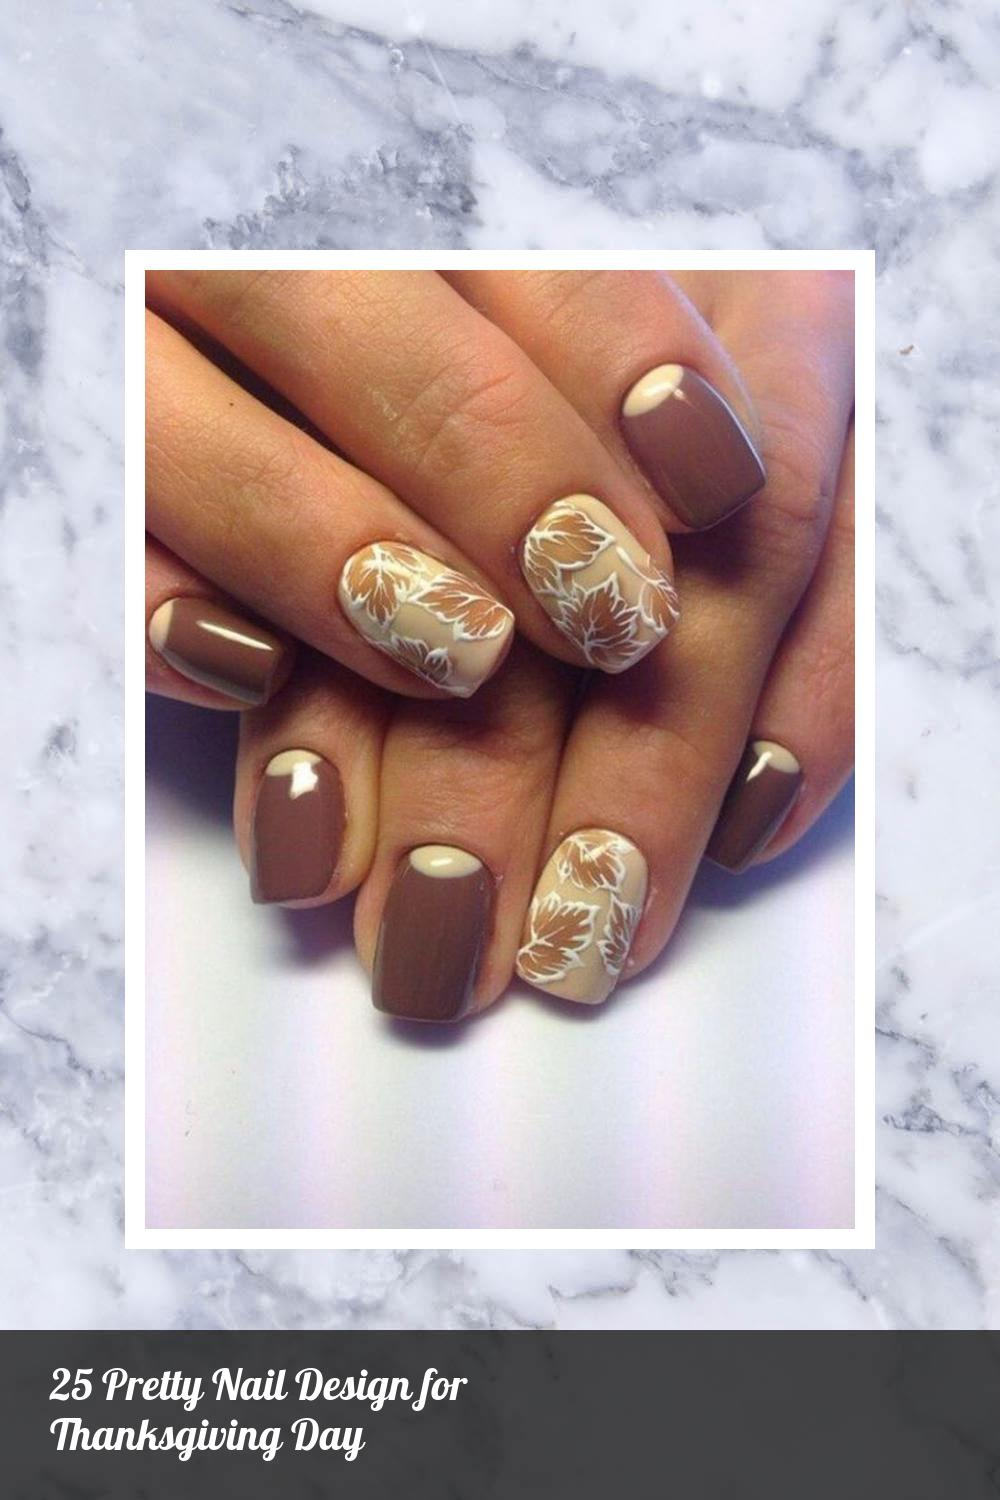 25 Pretty Nail Design for Thanksgiving Day 11